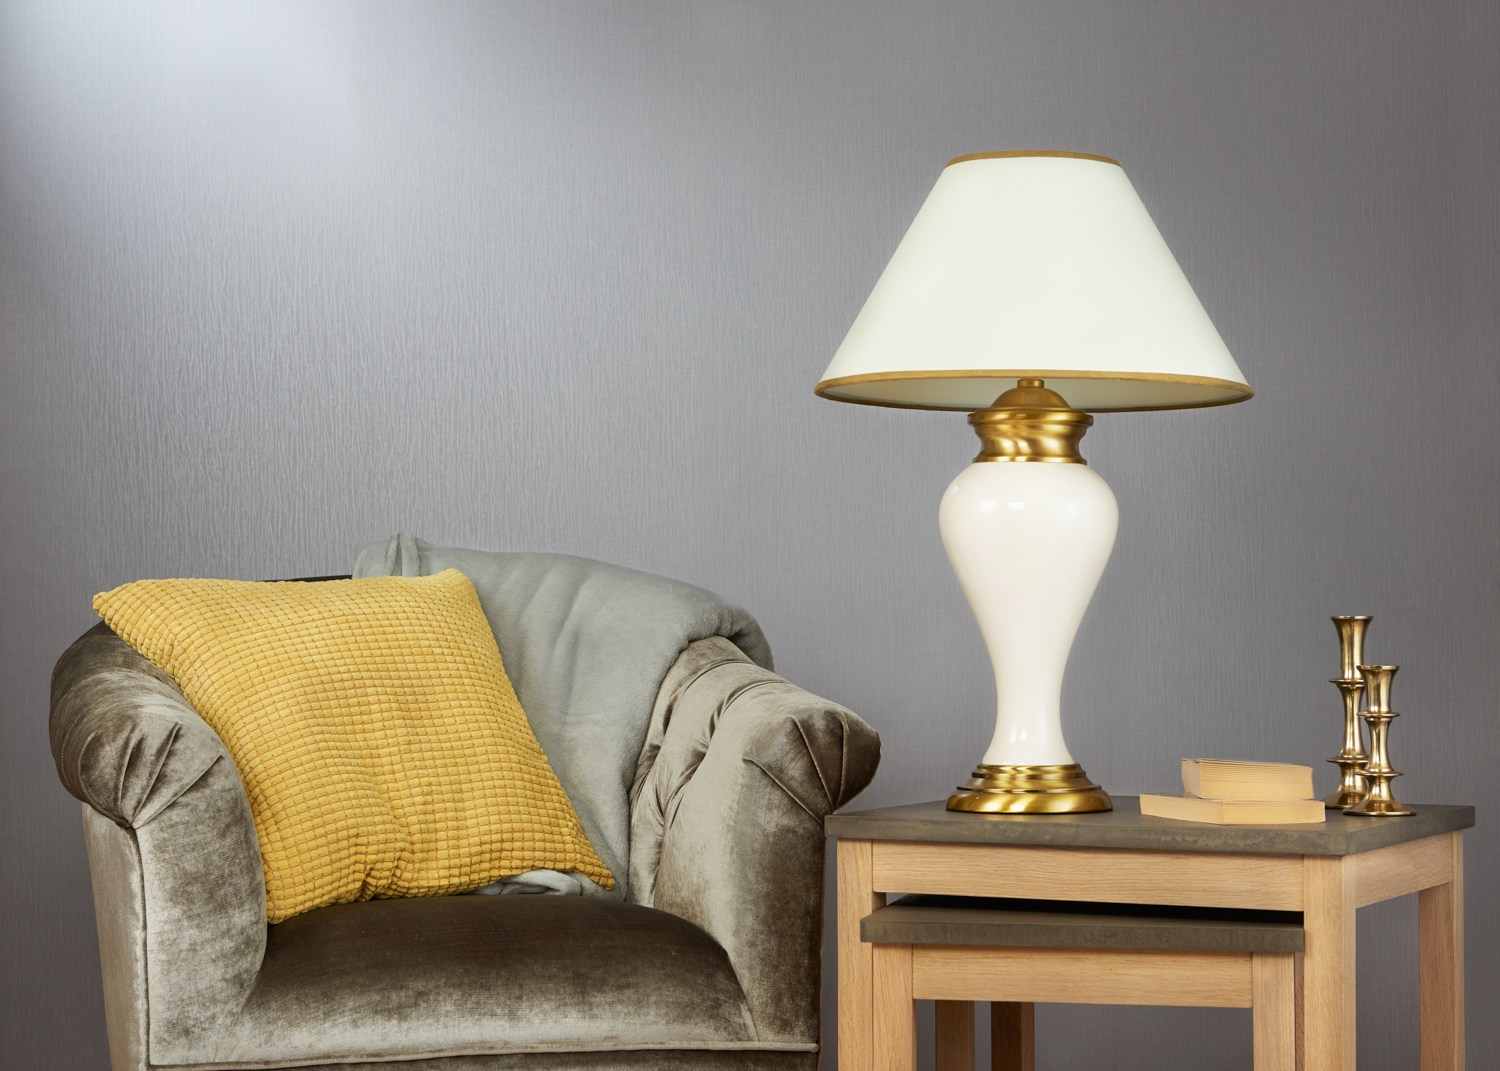 Waisted Table Lamp Cream_30236872_Wideshot.jpg